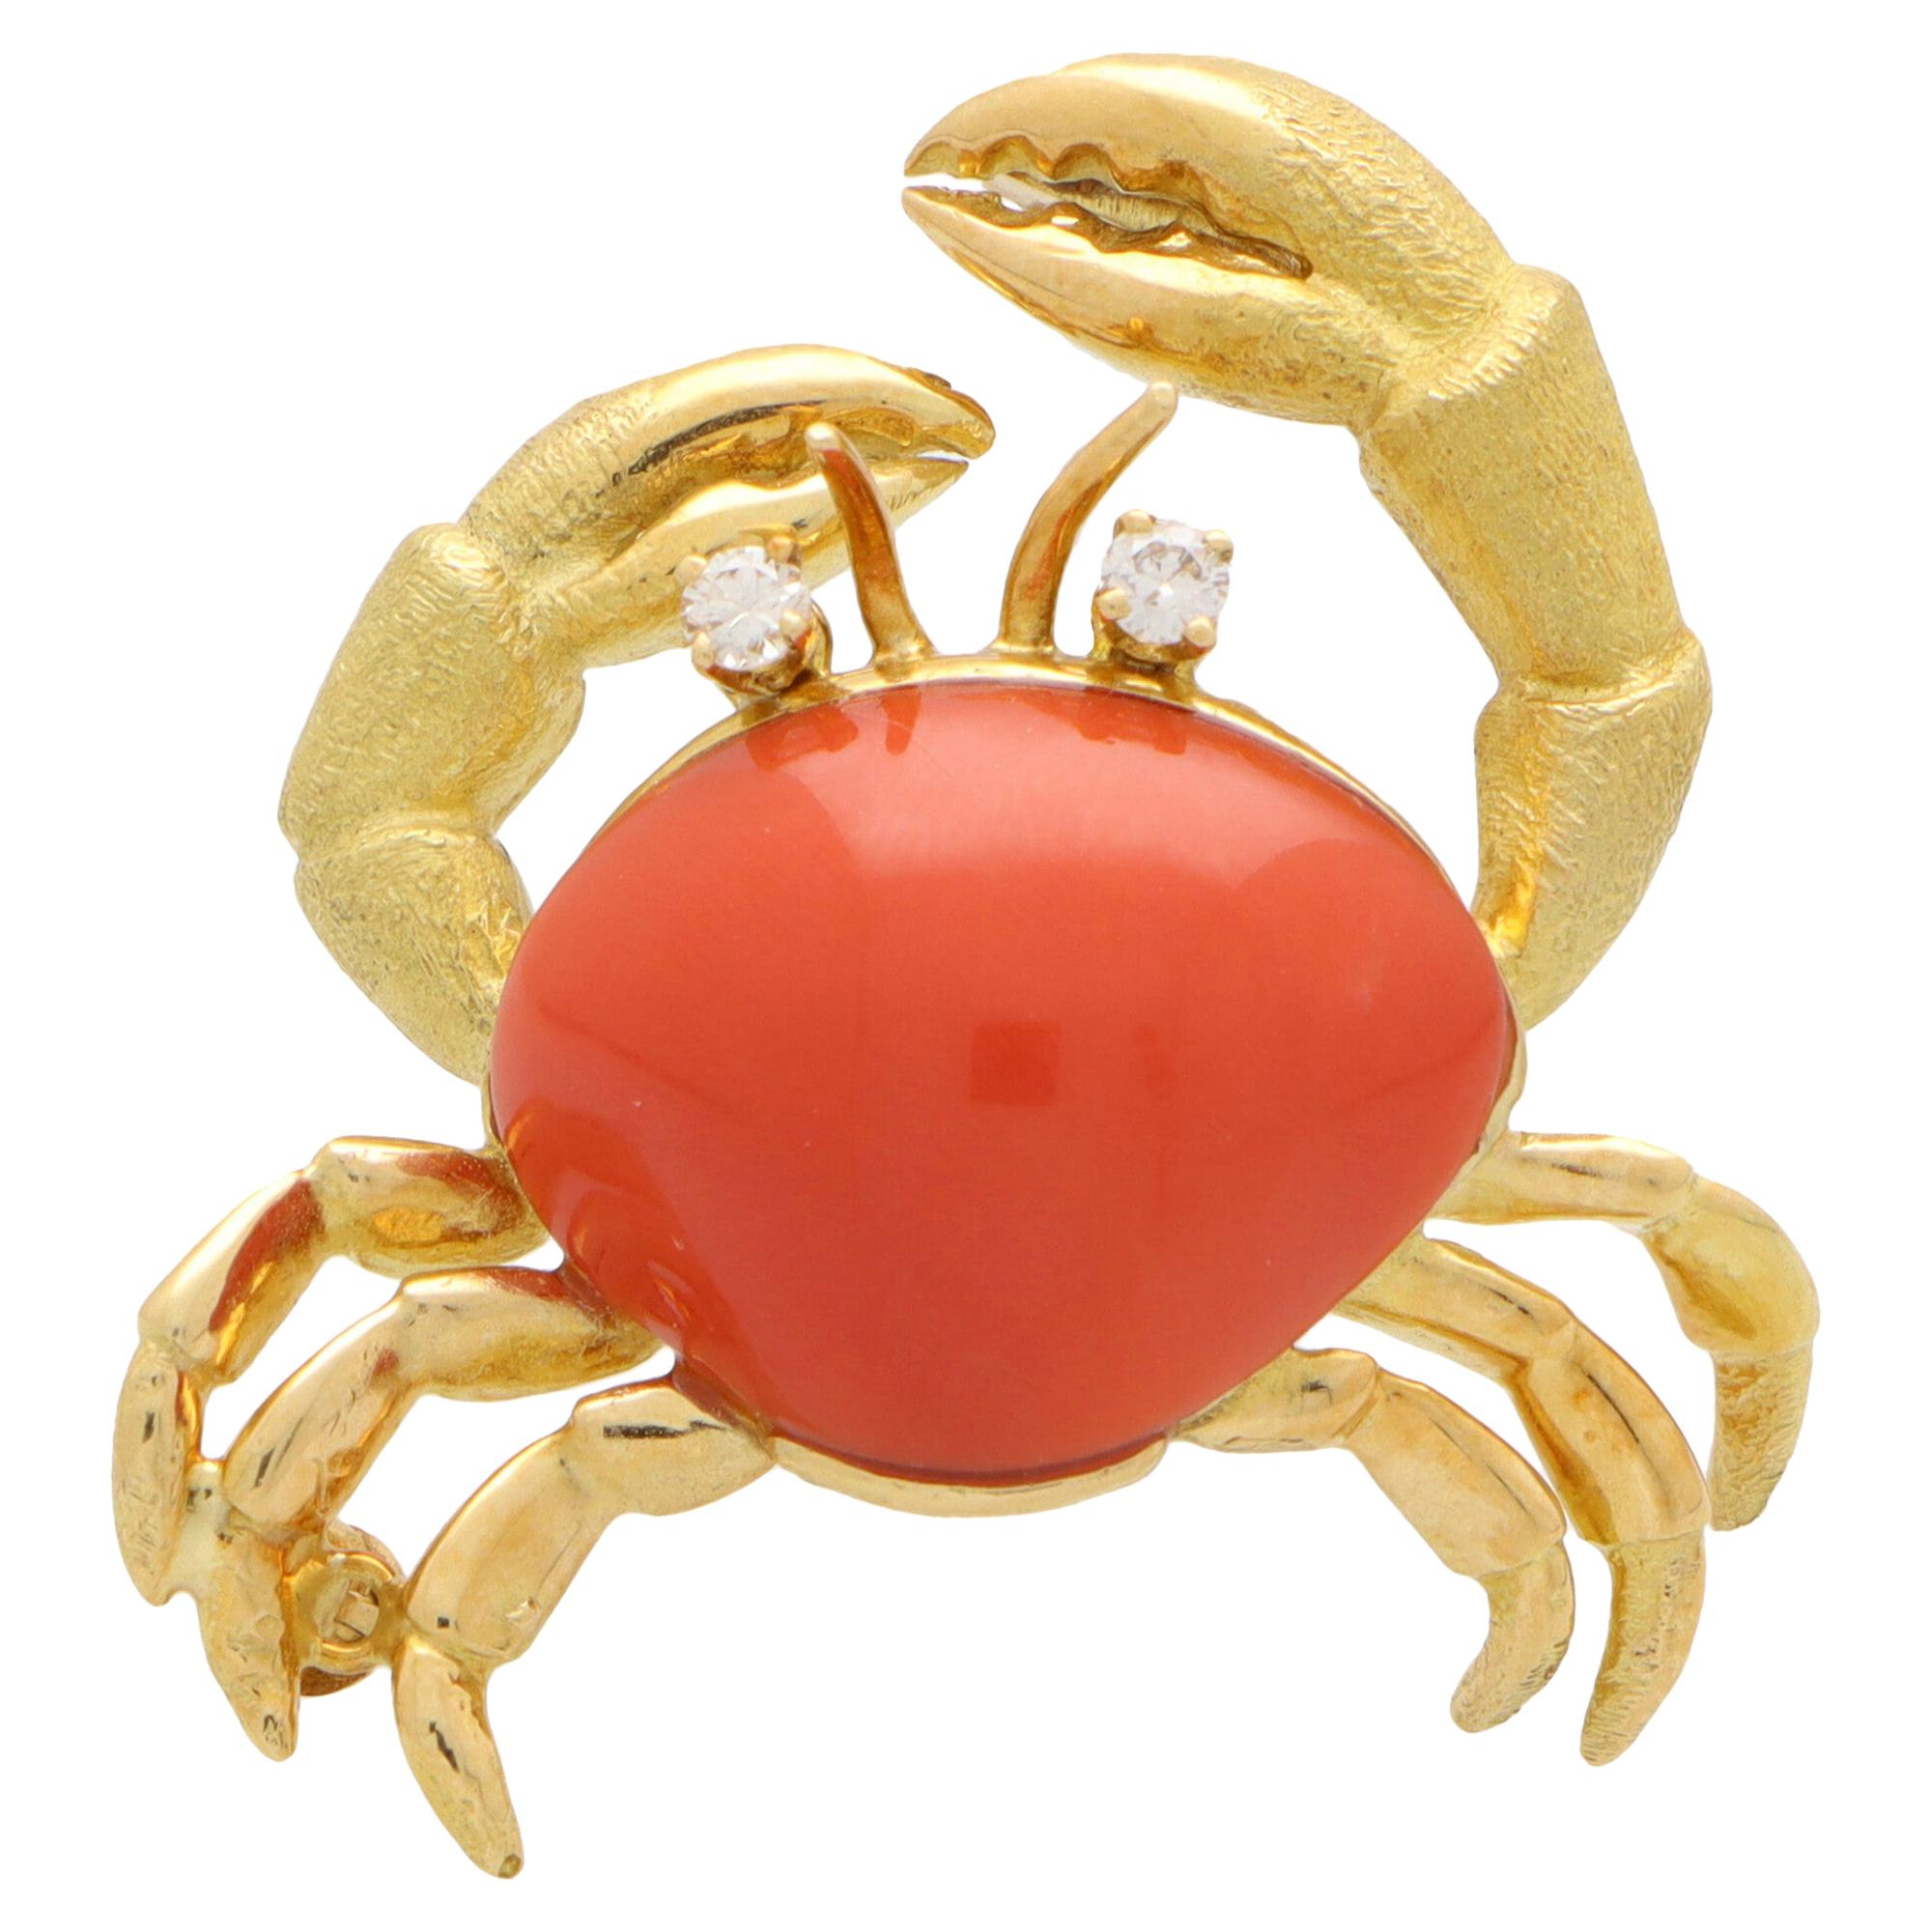 Vintage Tiffany & Co. Coral and Diamond Crab Brooch Pin Set in 18k Yellow Gold